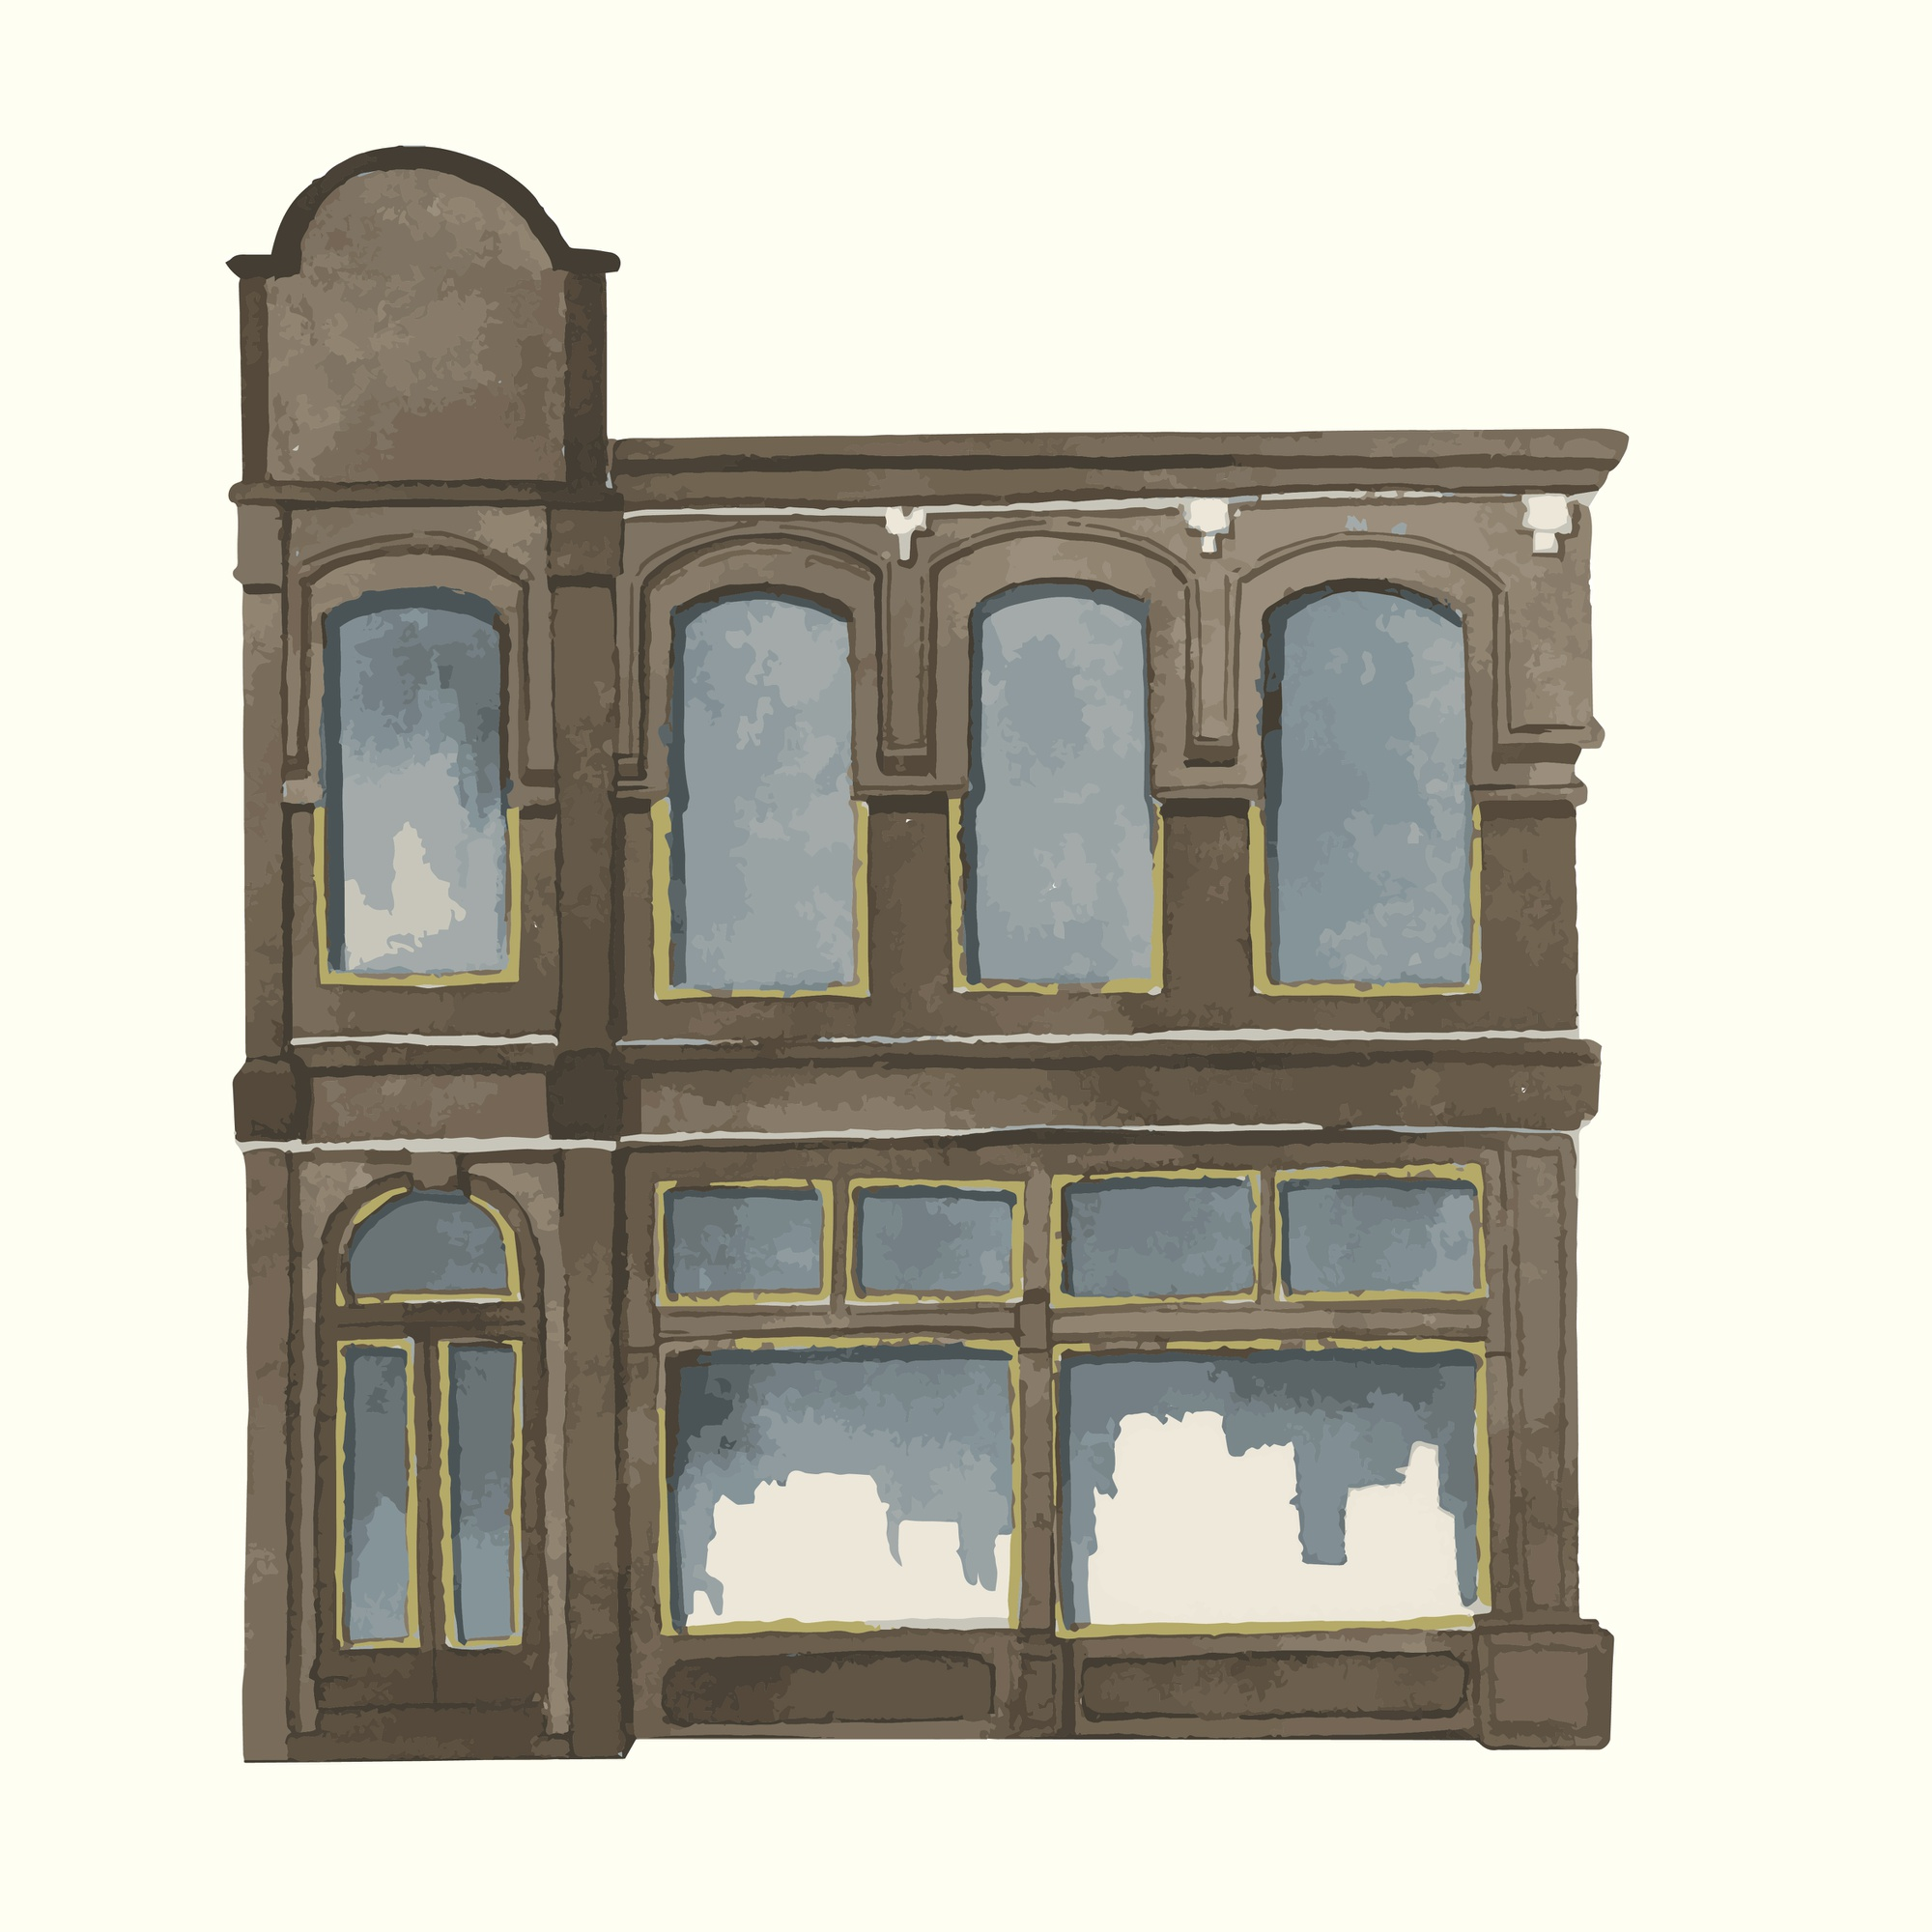 Illustration of a vintage European city building exterior water color style